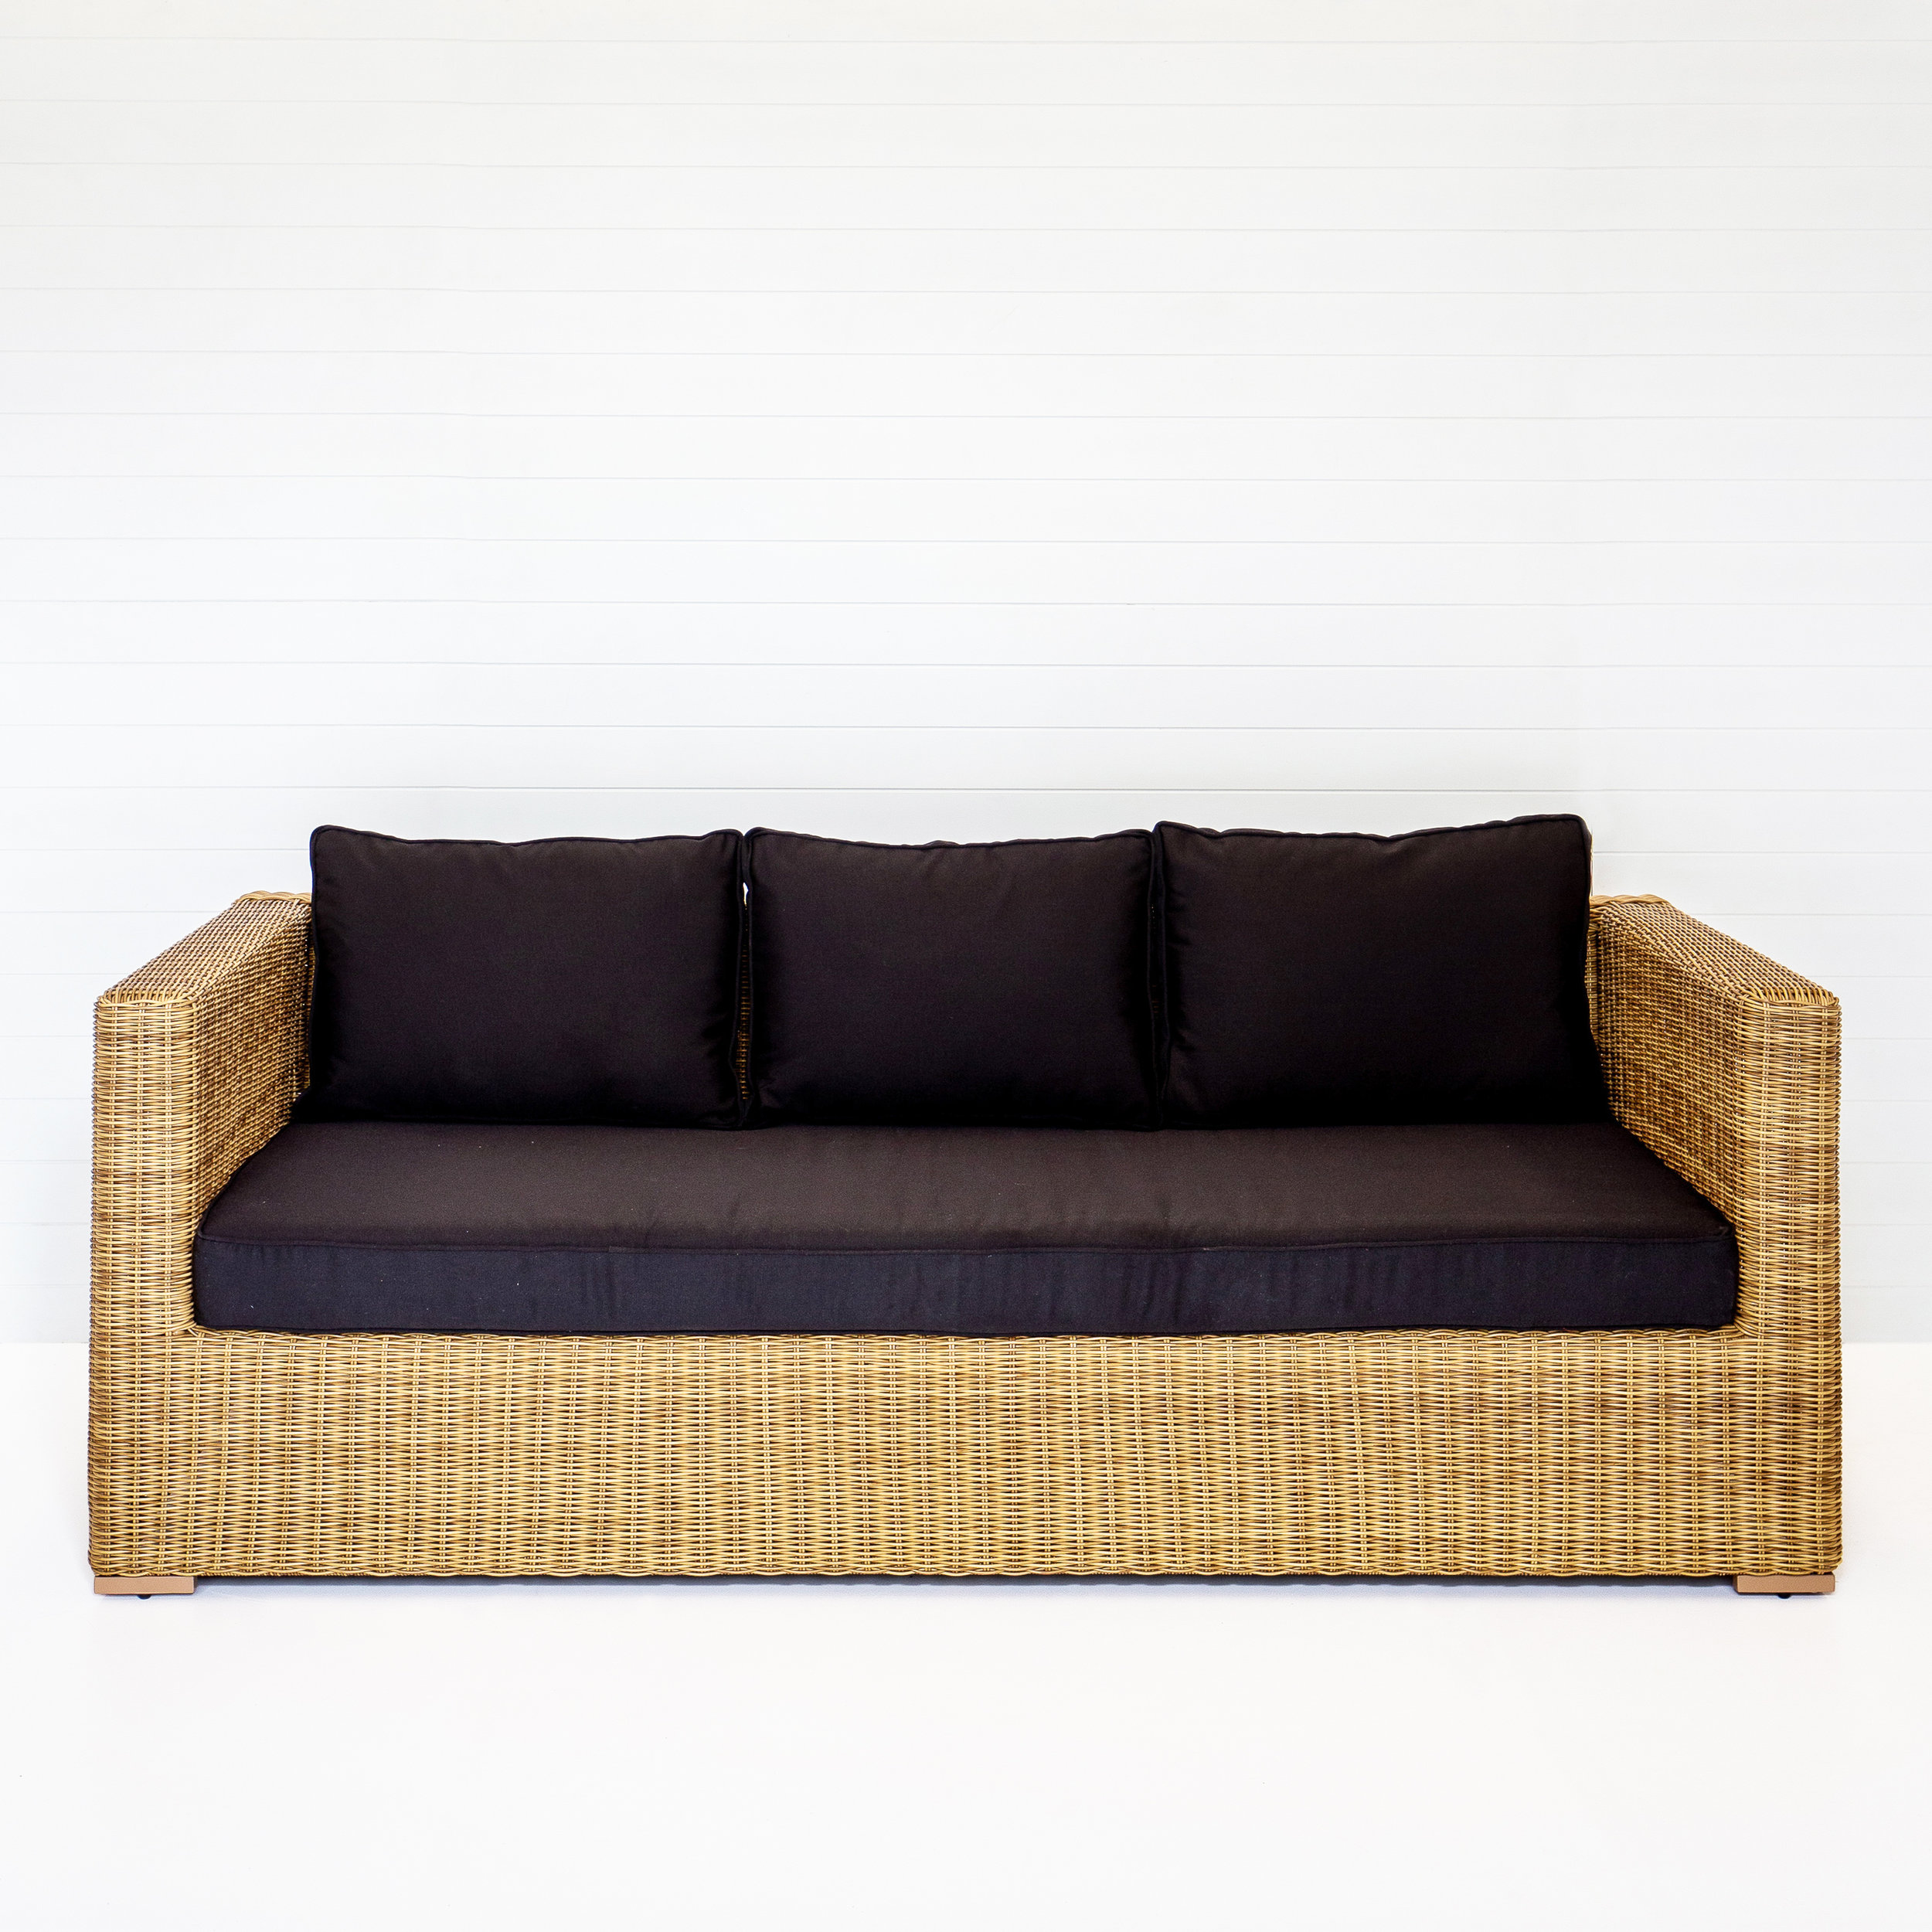 DUNE THREE SEATER SOFA (WITH ARMS) WITH BLACK CUSHIONS